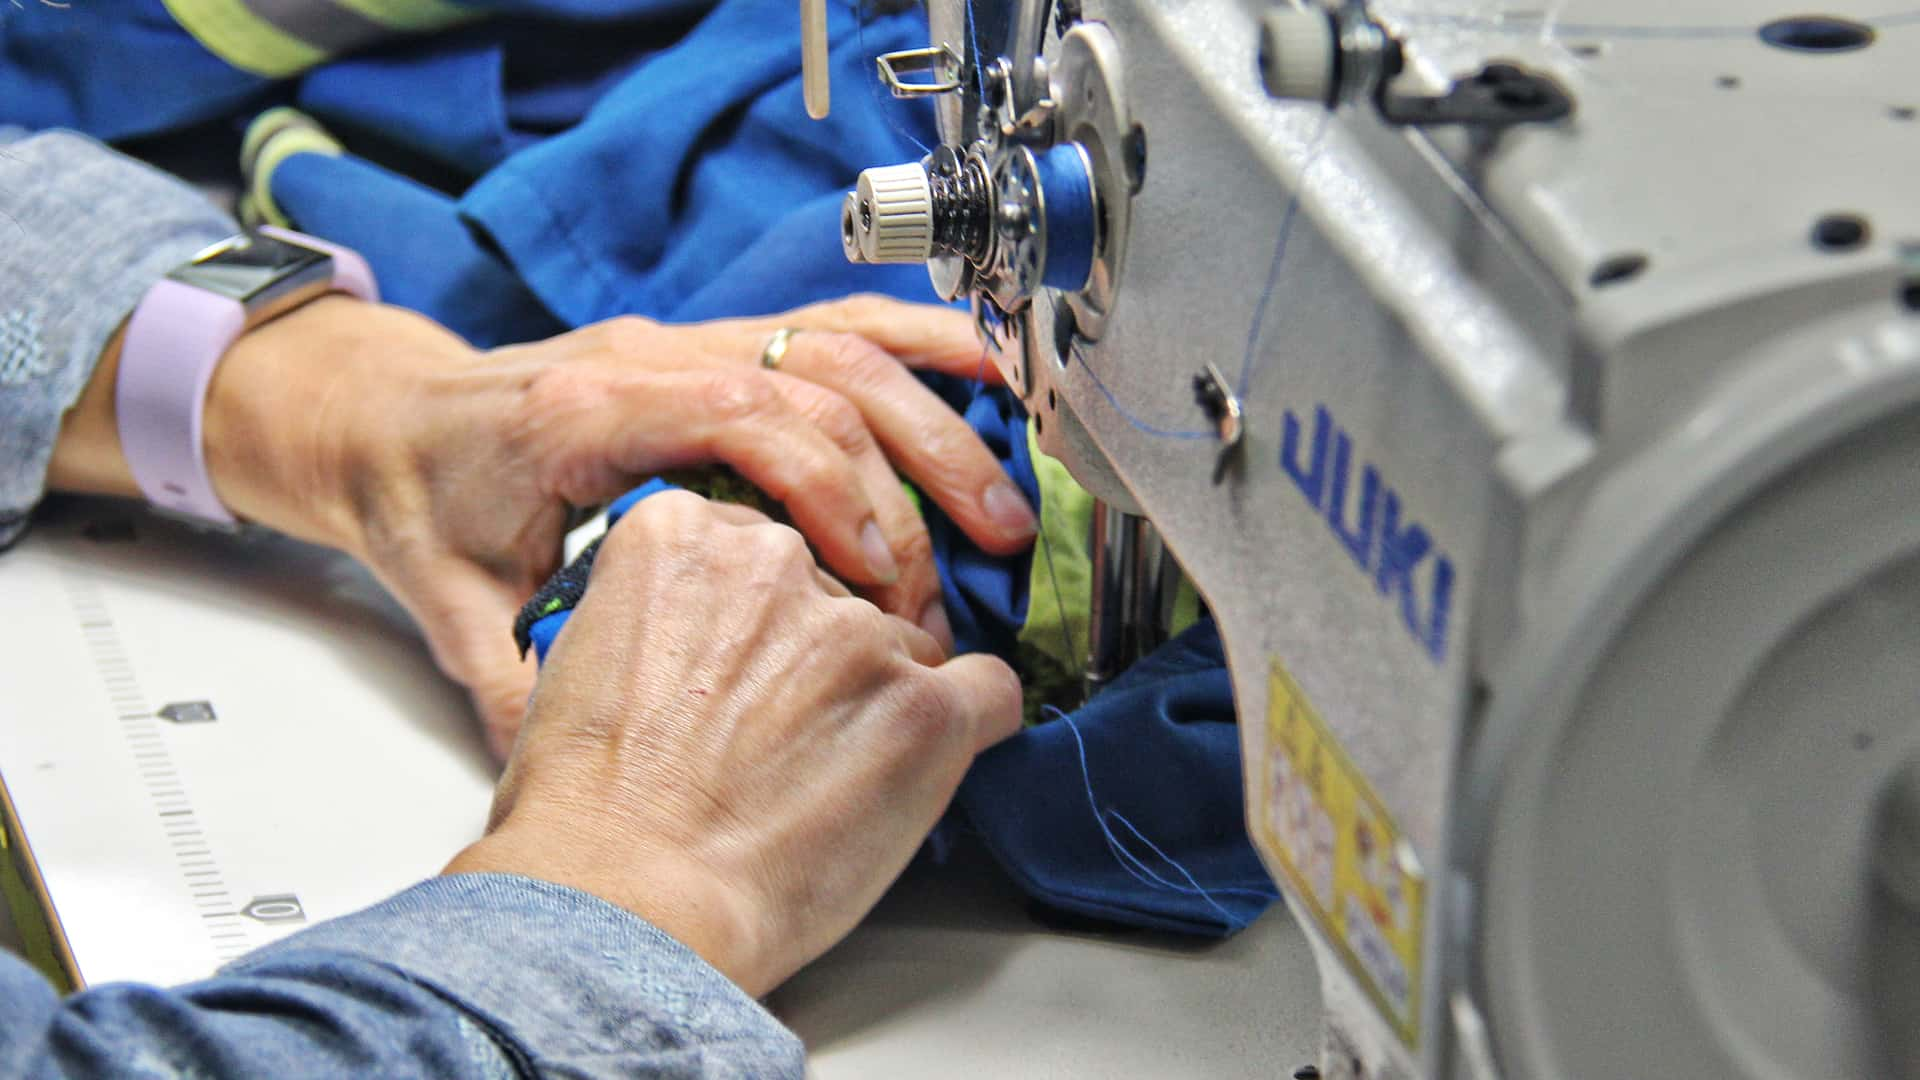 The hard working staff at Richmond Dry Cleaners can repair your coveralls in-house